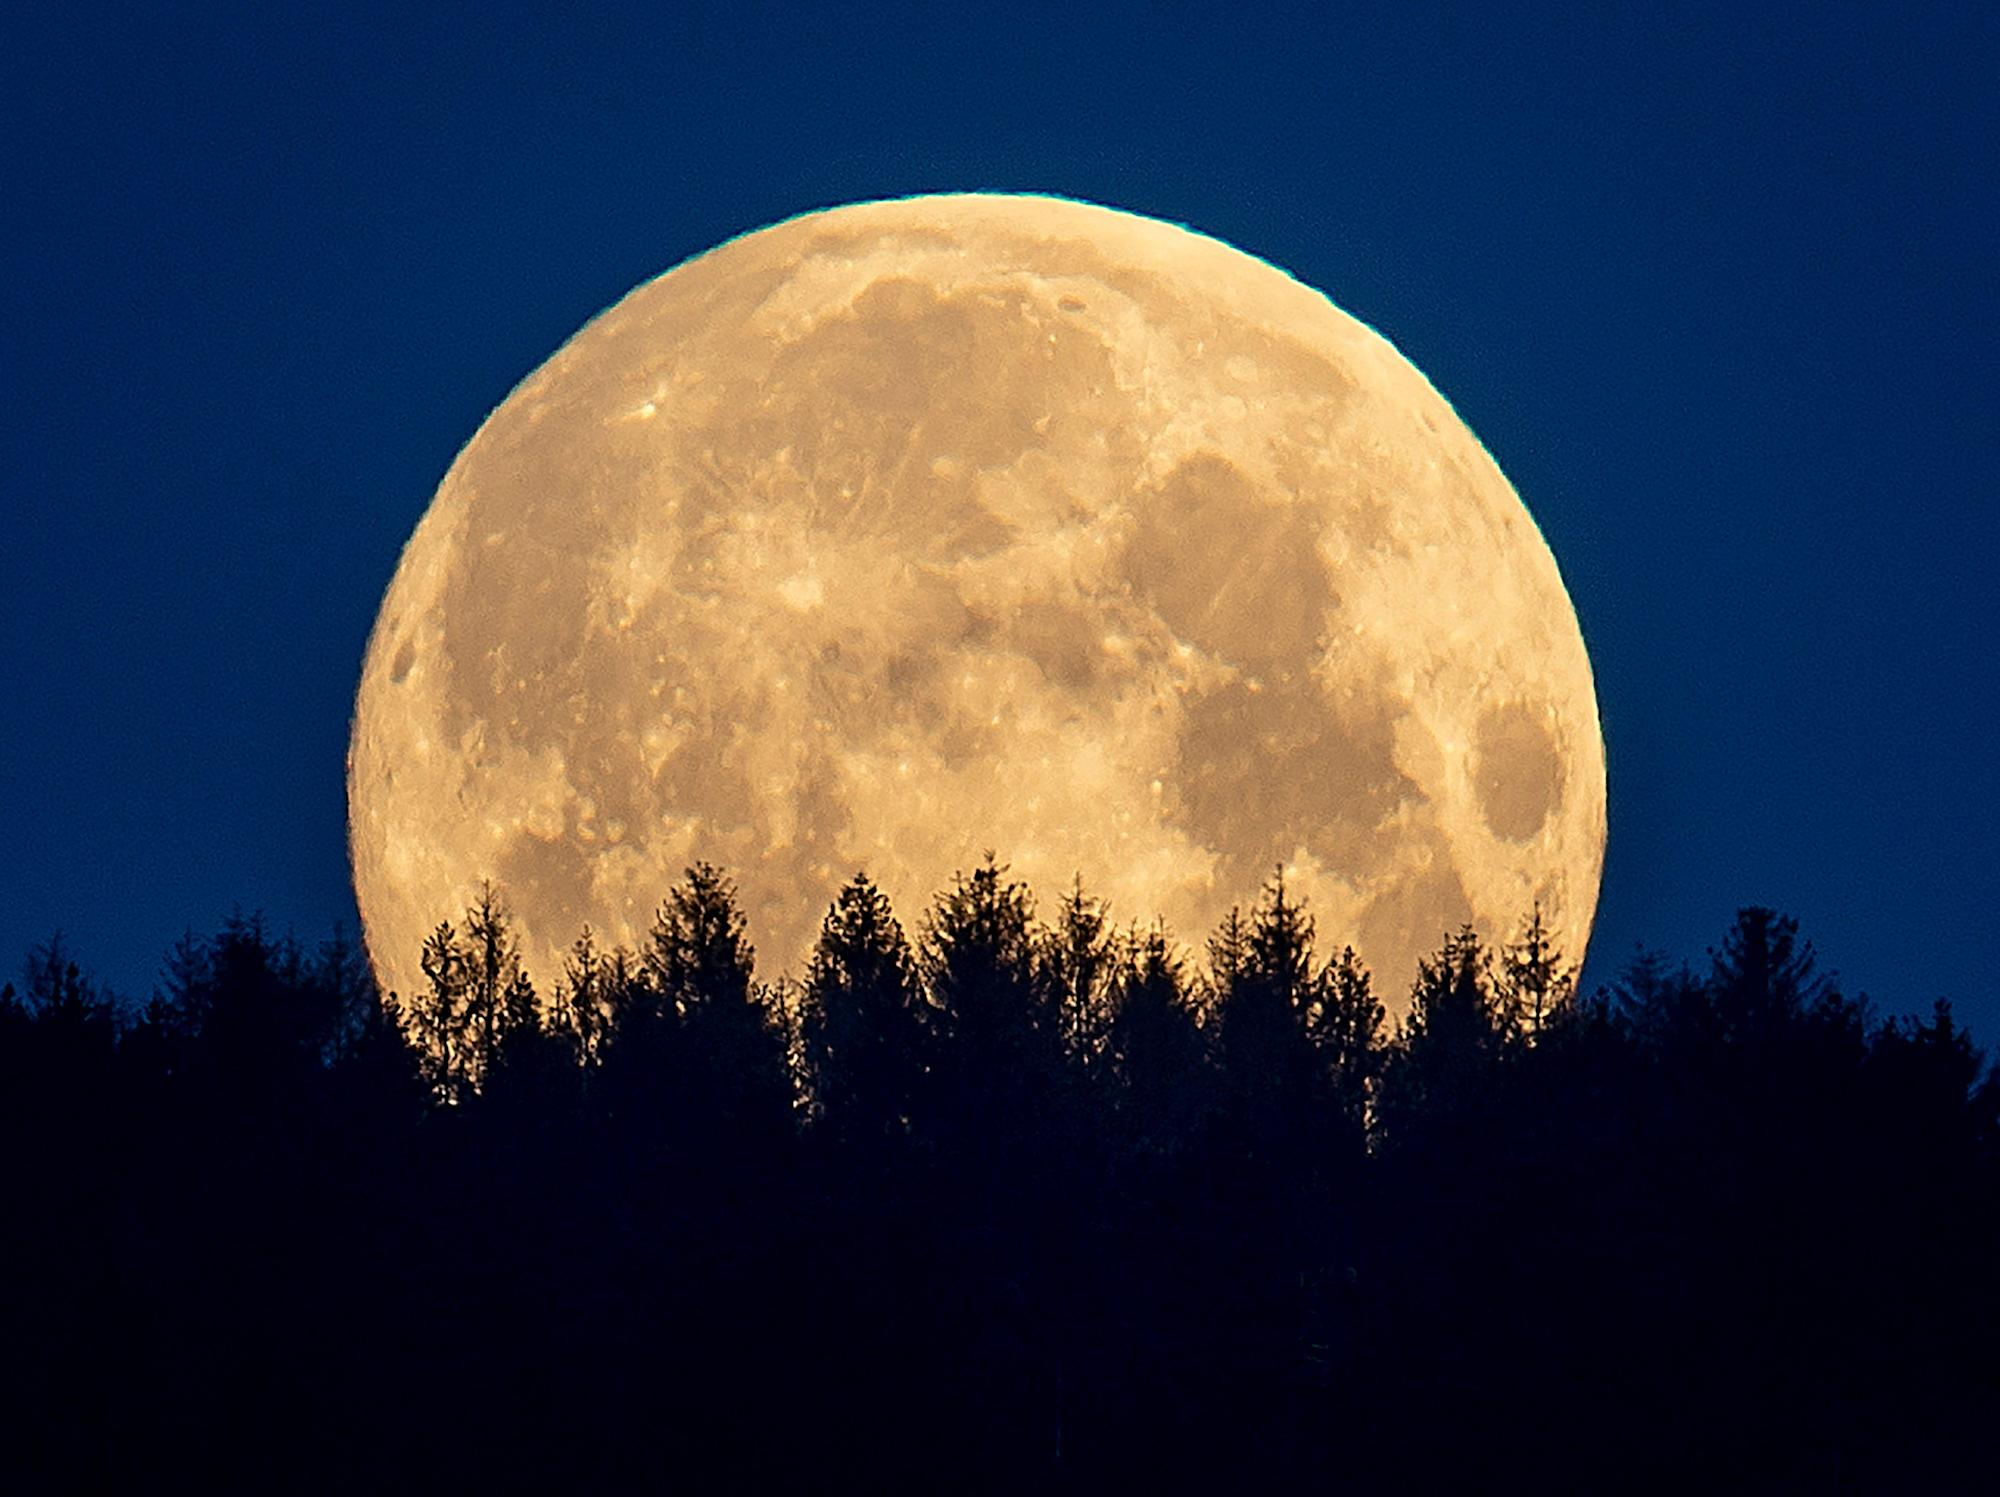 A rare Blue Blood Moon rises on Halloween. Here's what that means.